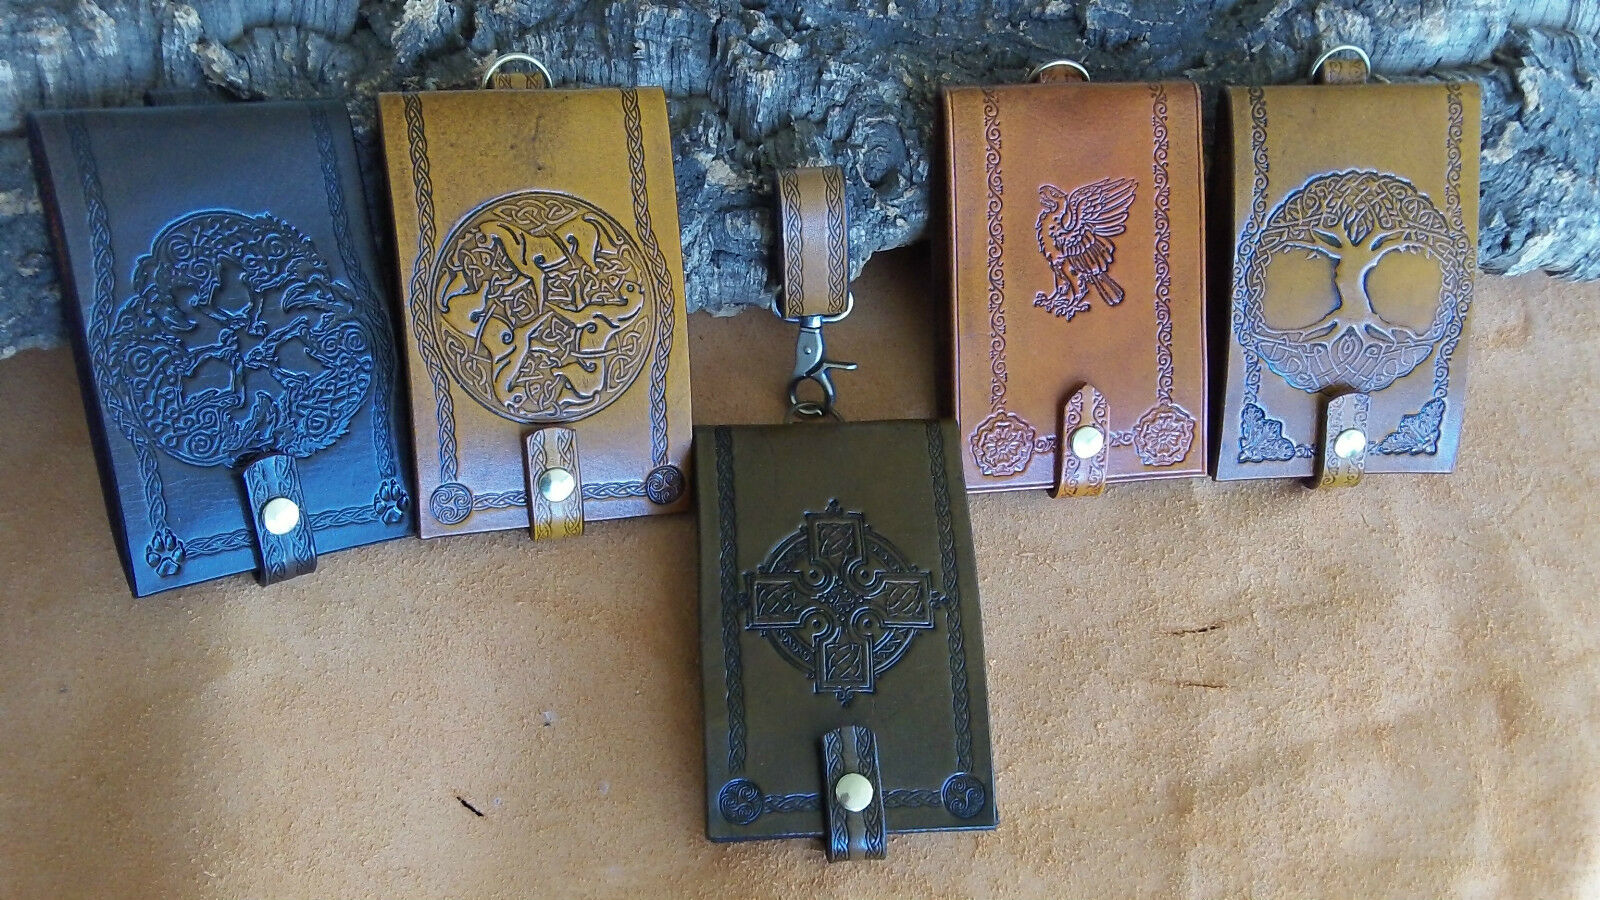 Personalised embossed leather archery score pad cover, scorepad